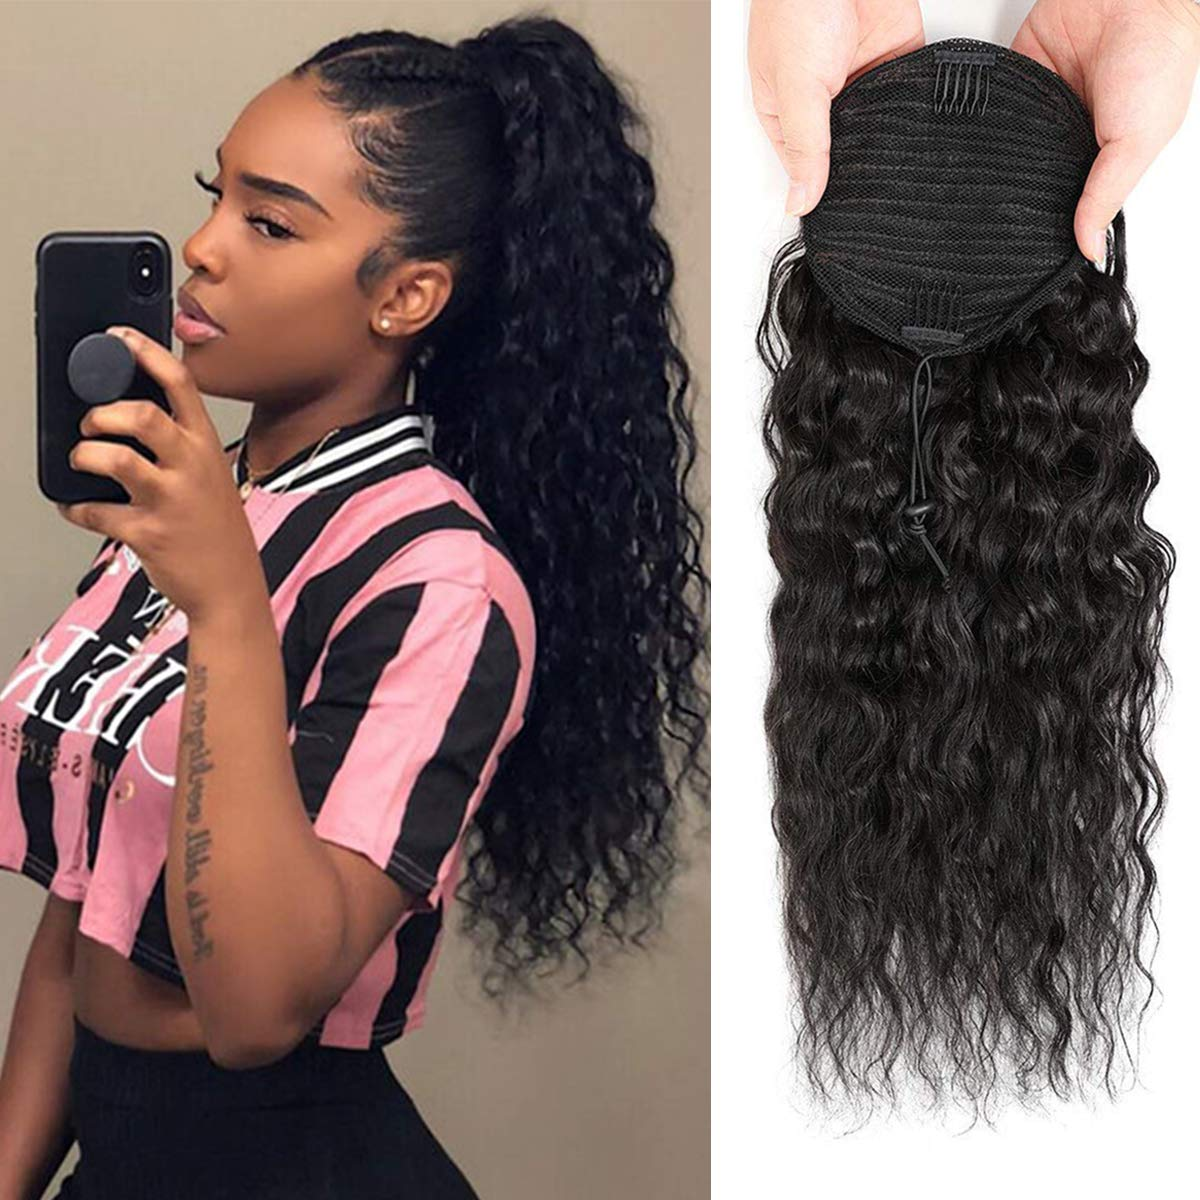 Human Hair Clip Daily bargain sale Albuquerque Mall in Corn Wave Ponytail Long Extensions Draw Wrap